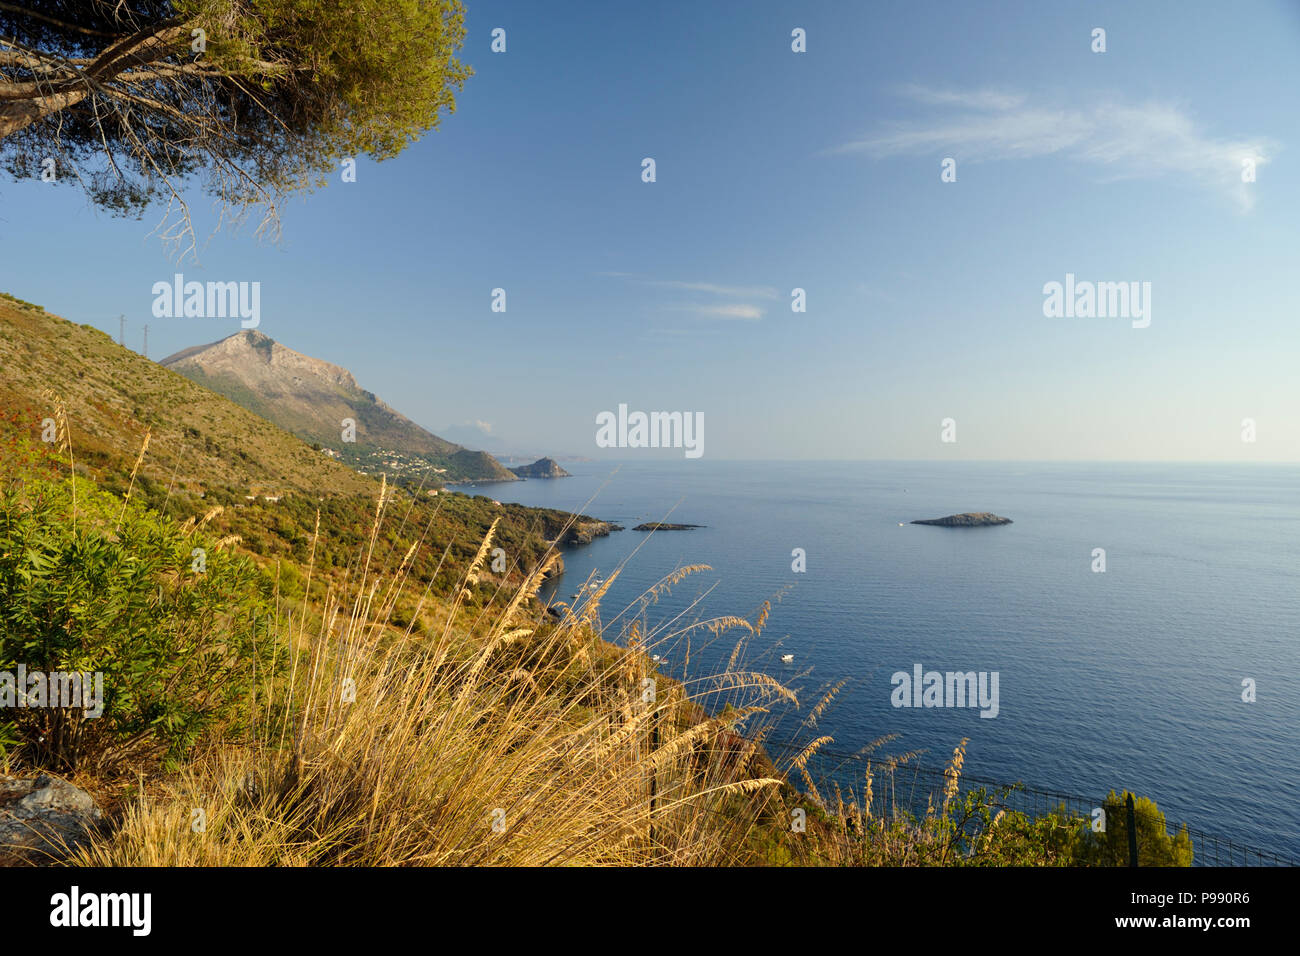 L'Italie, la Basilicate, Maratea, coast Photo Stock